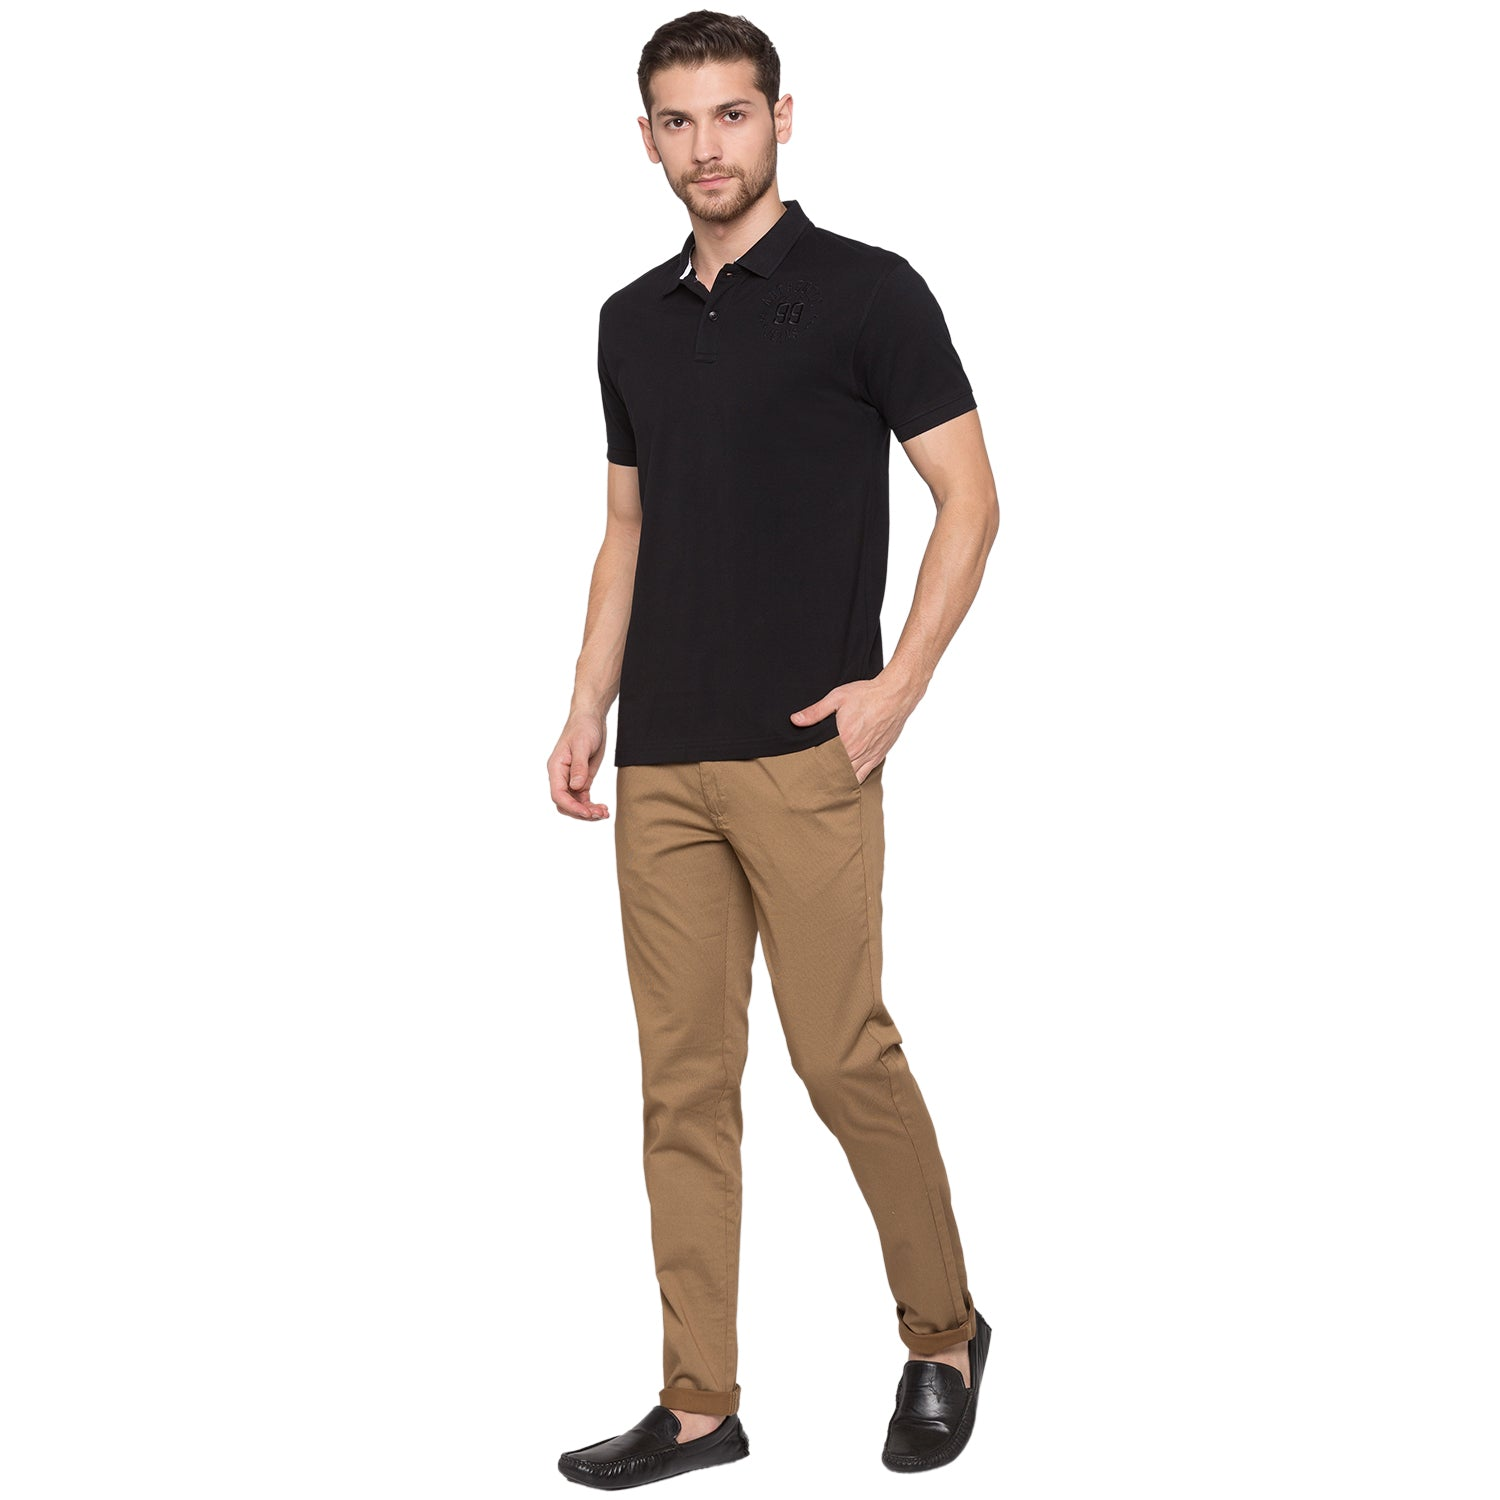 Globus Black Solid Polo T-Shirt4